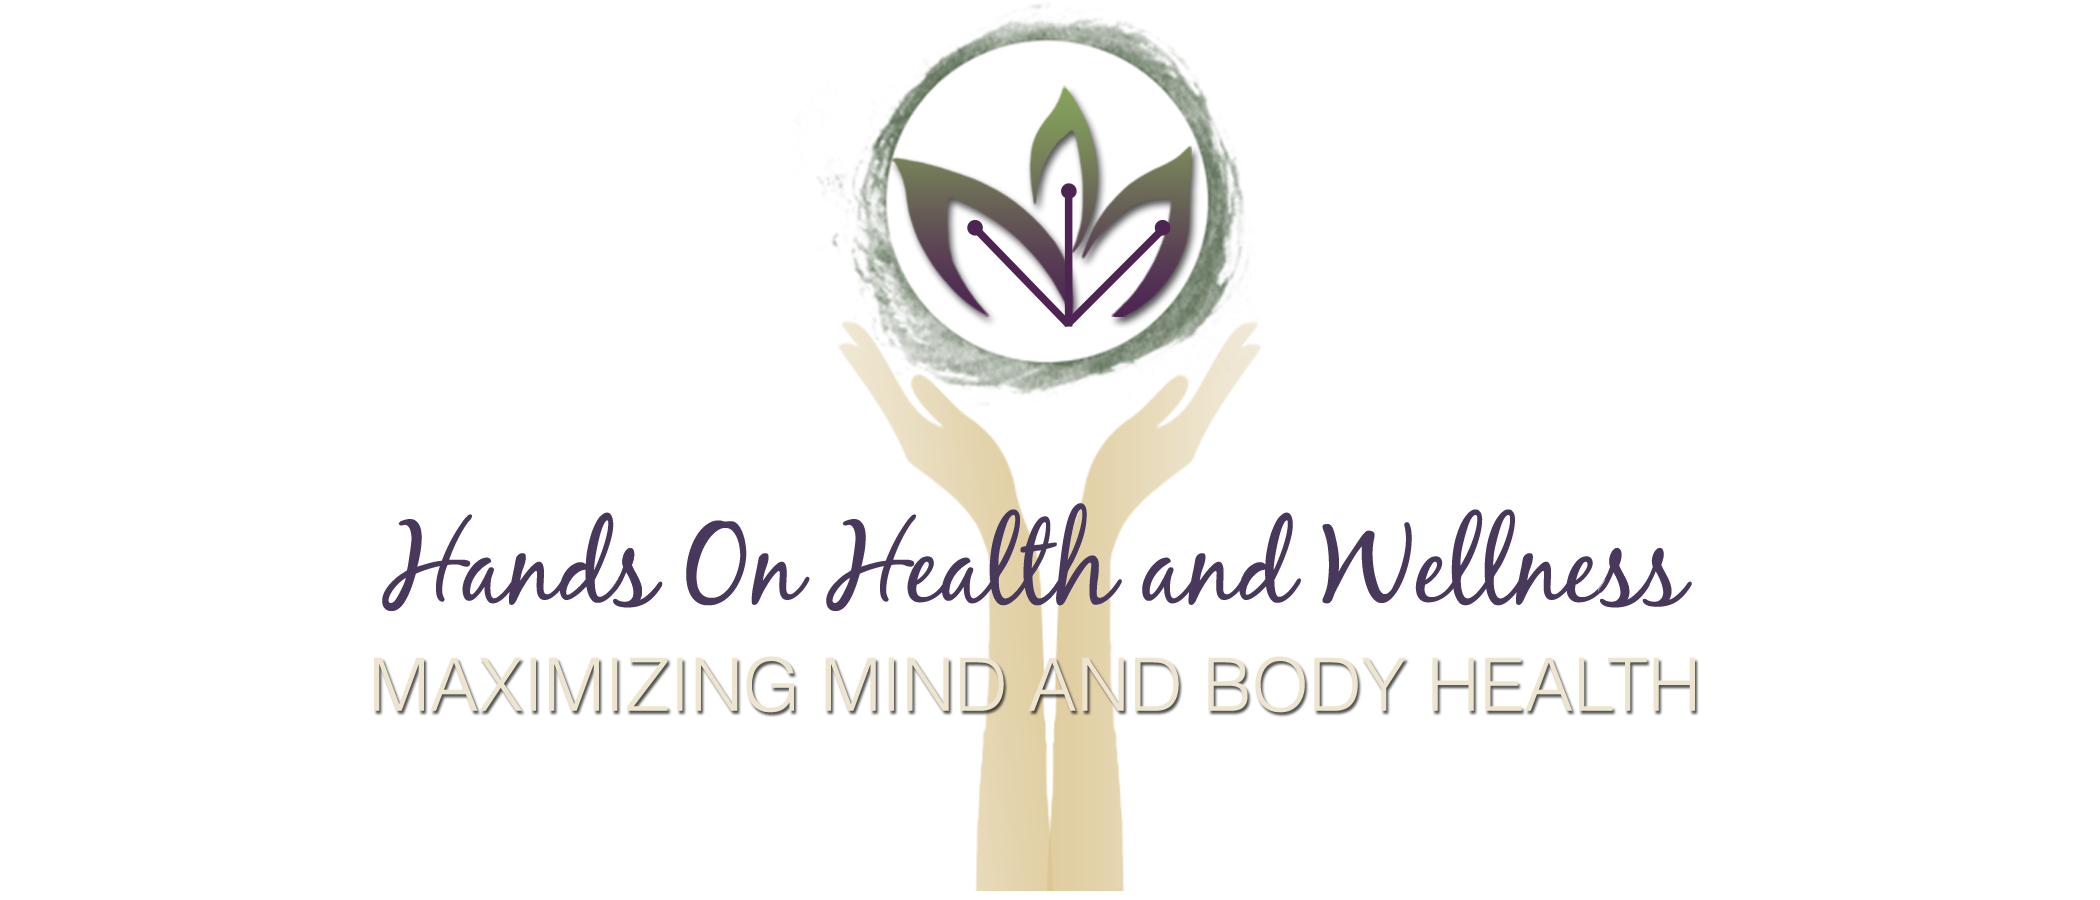 Hands On Health And Wellness